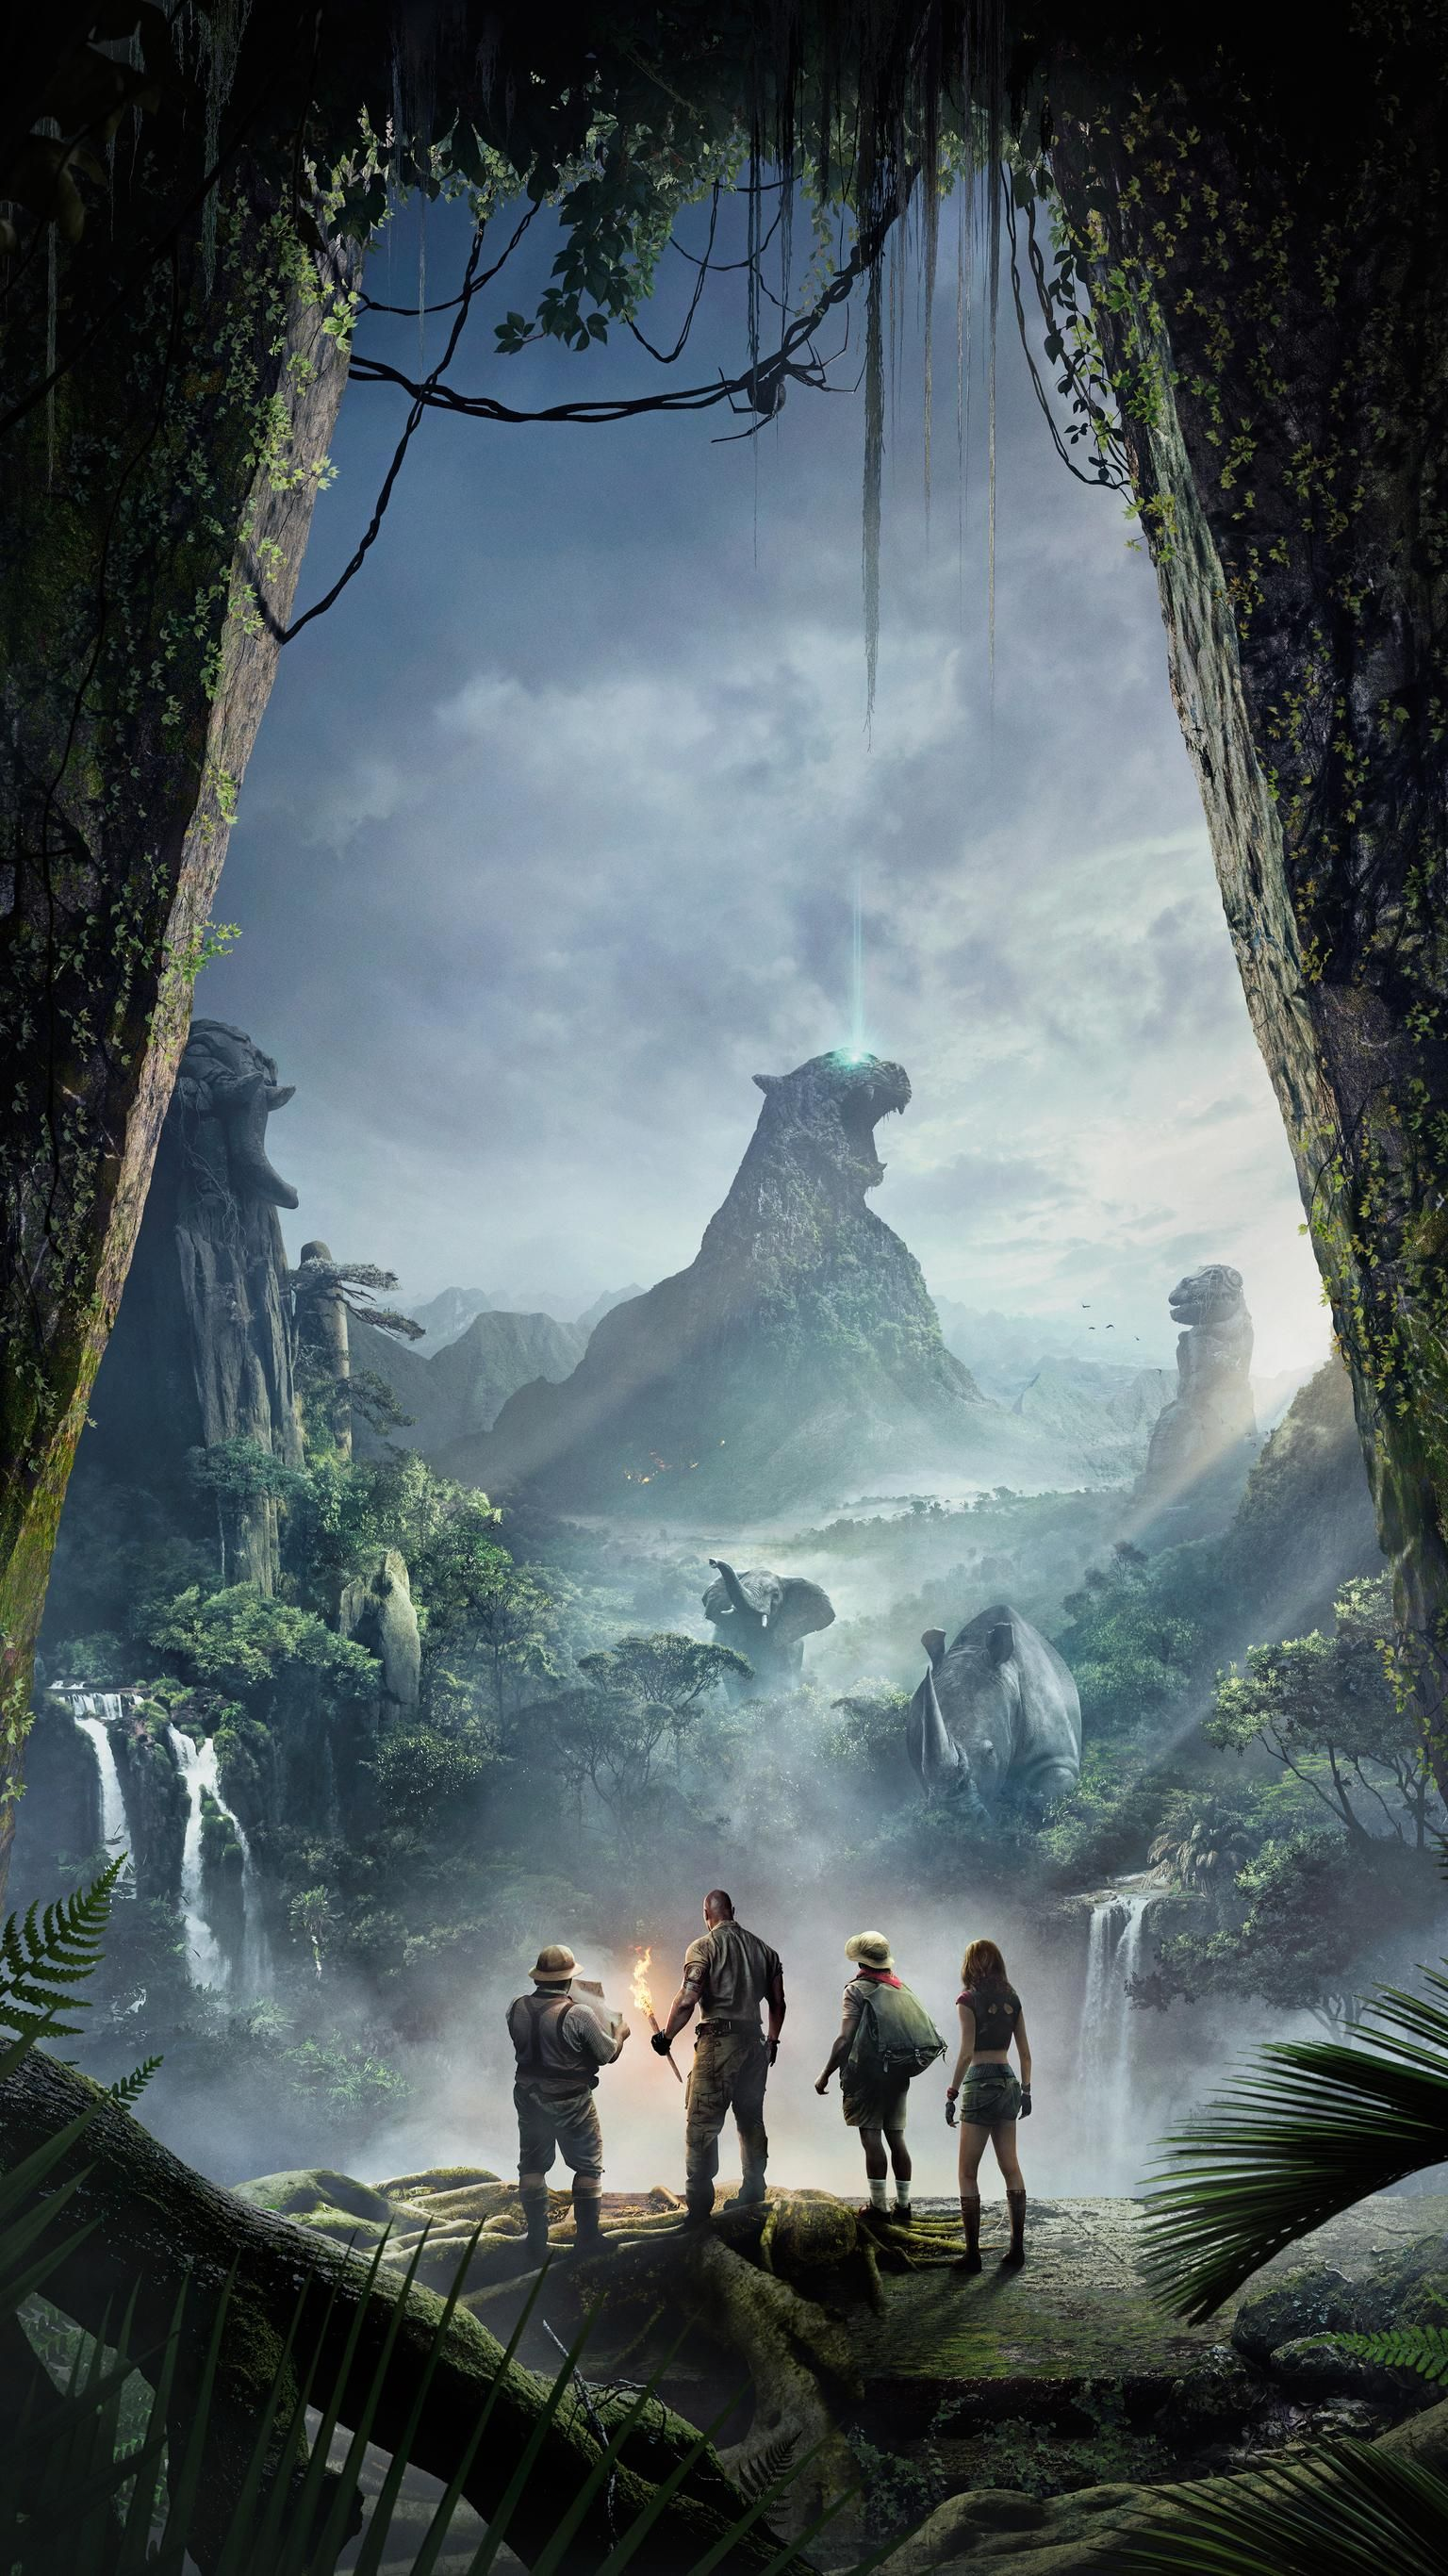 Jumanji to the Jungle (2017) Phone Wallpaper in